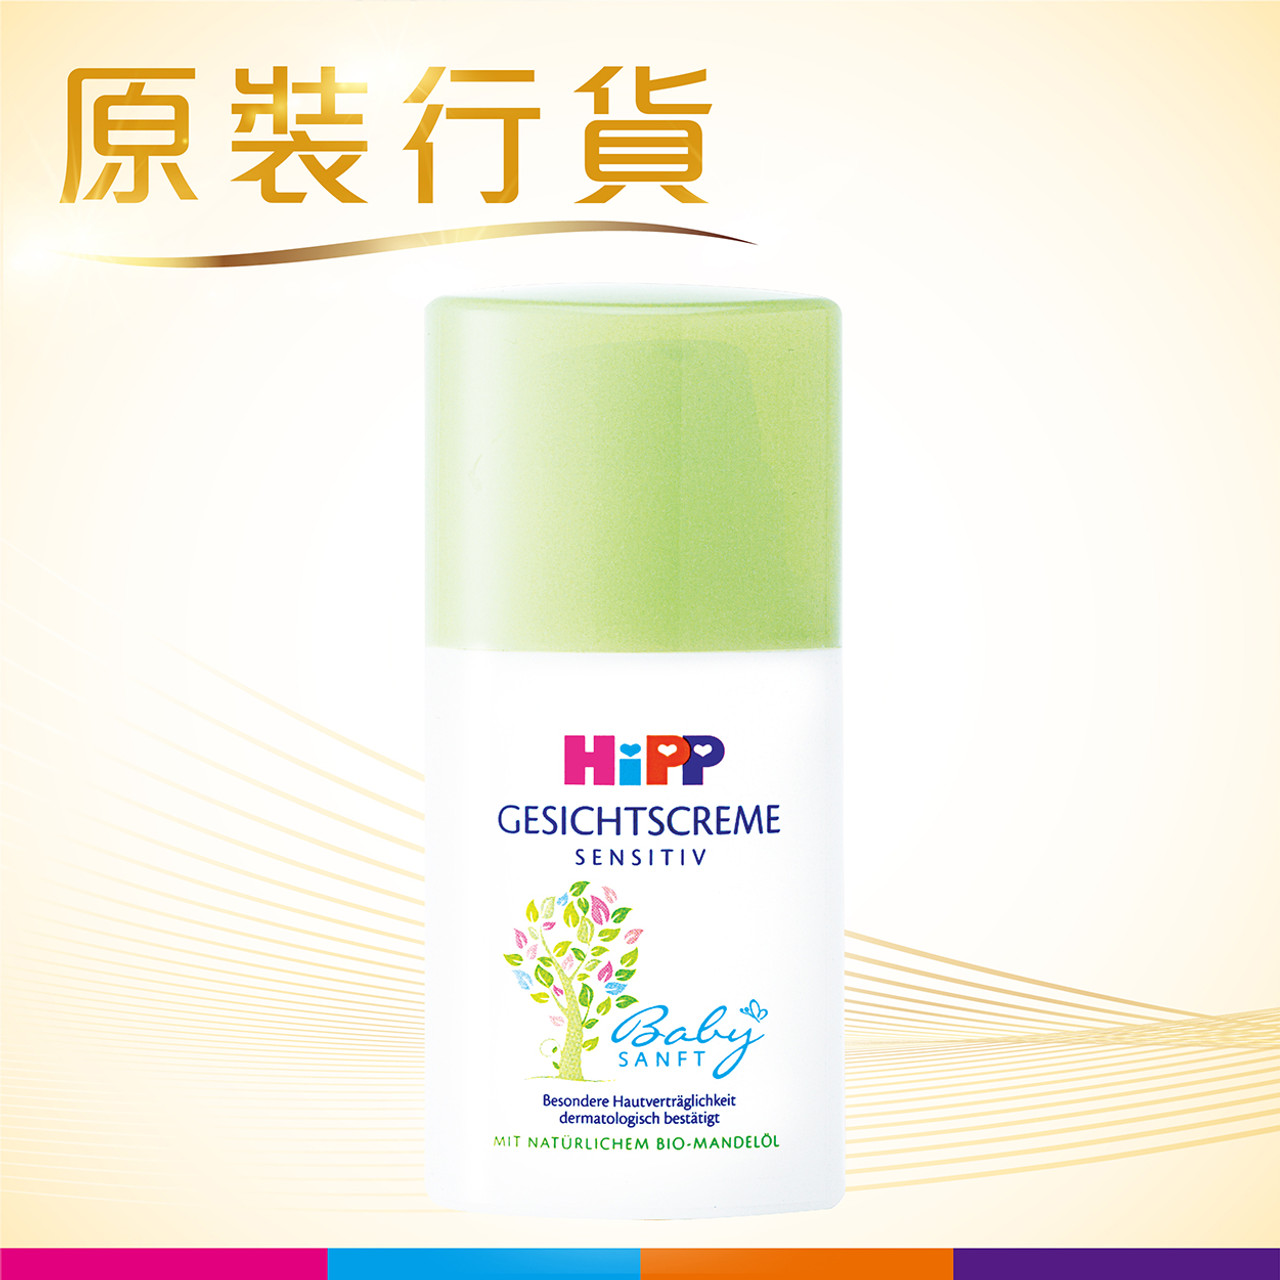 HiPP Babysanft Face Cream 50ml (Photo for reference only)  | 喜寶嬰兒保濕面霜 50毫升 (圖片只供參考)